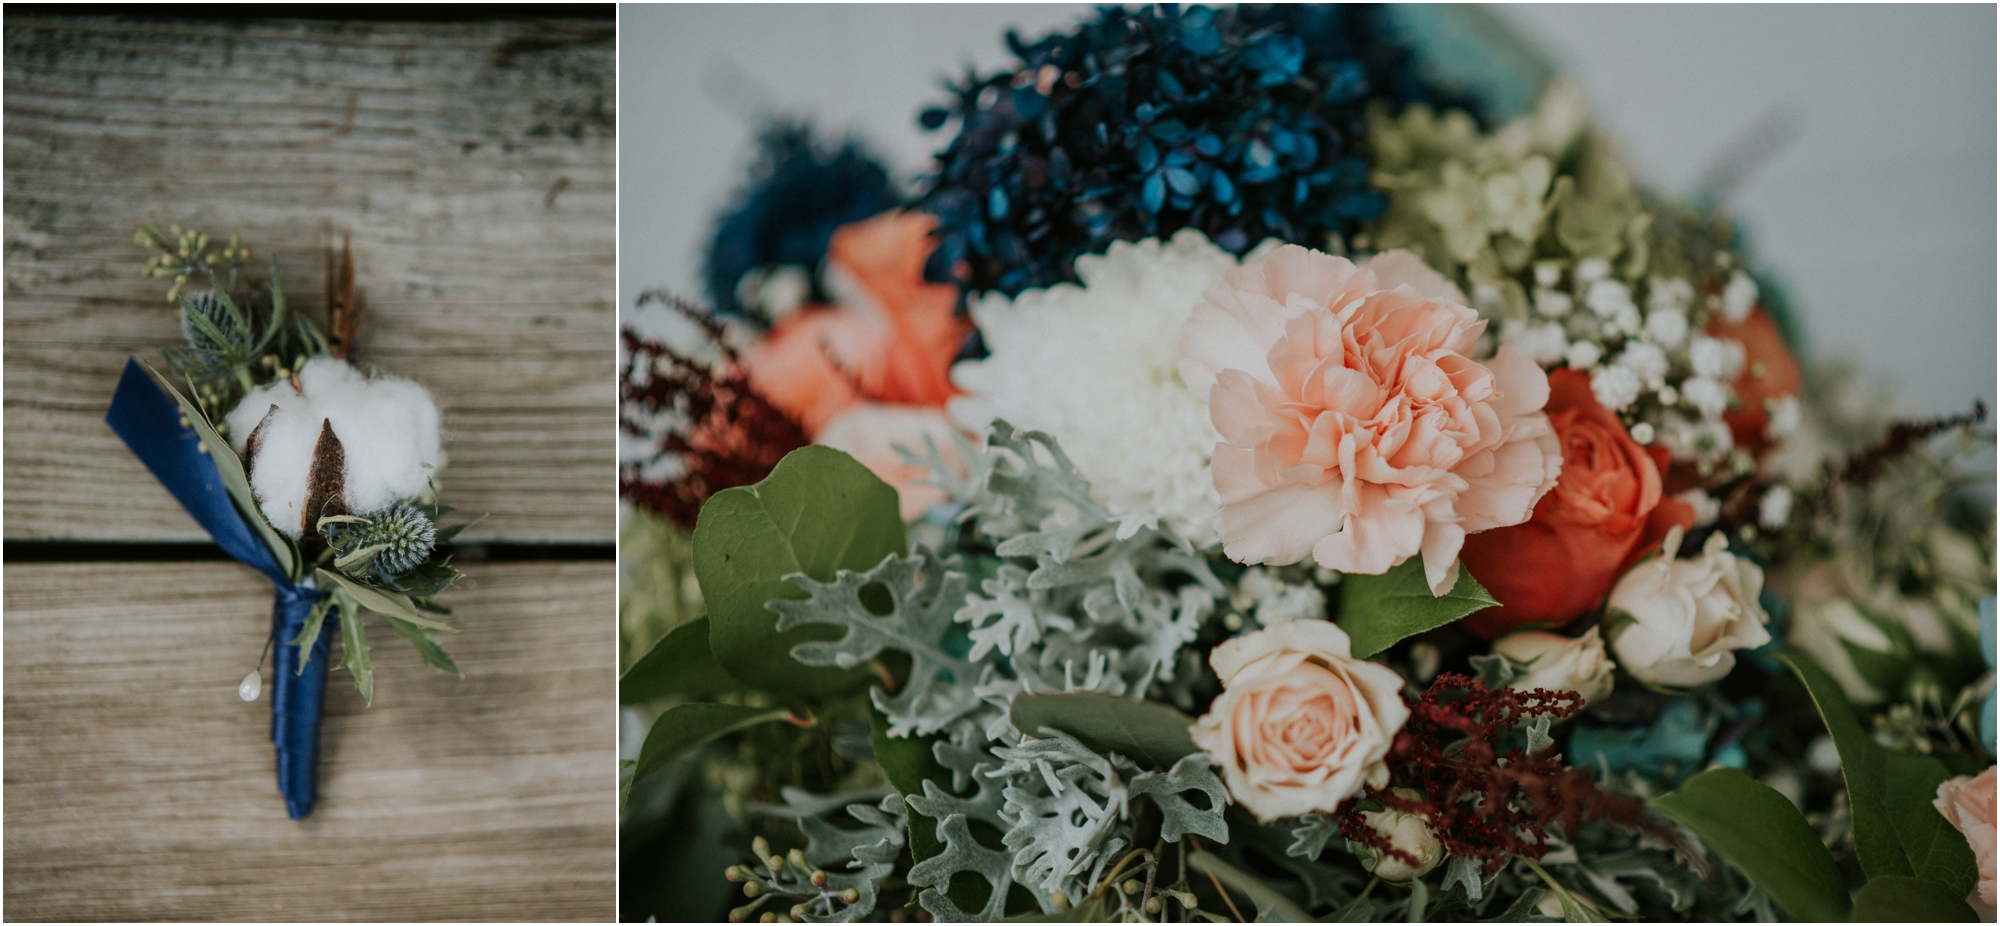 caryville-robbins-middle-tennessee-intimate-cozy-fall-navy-rustic-backyard-wedding_0009.jpg